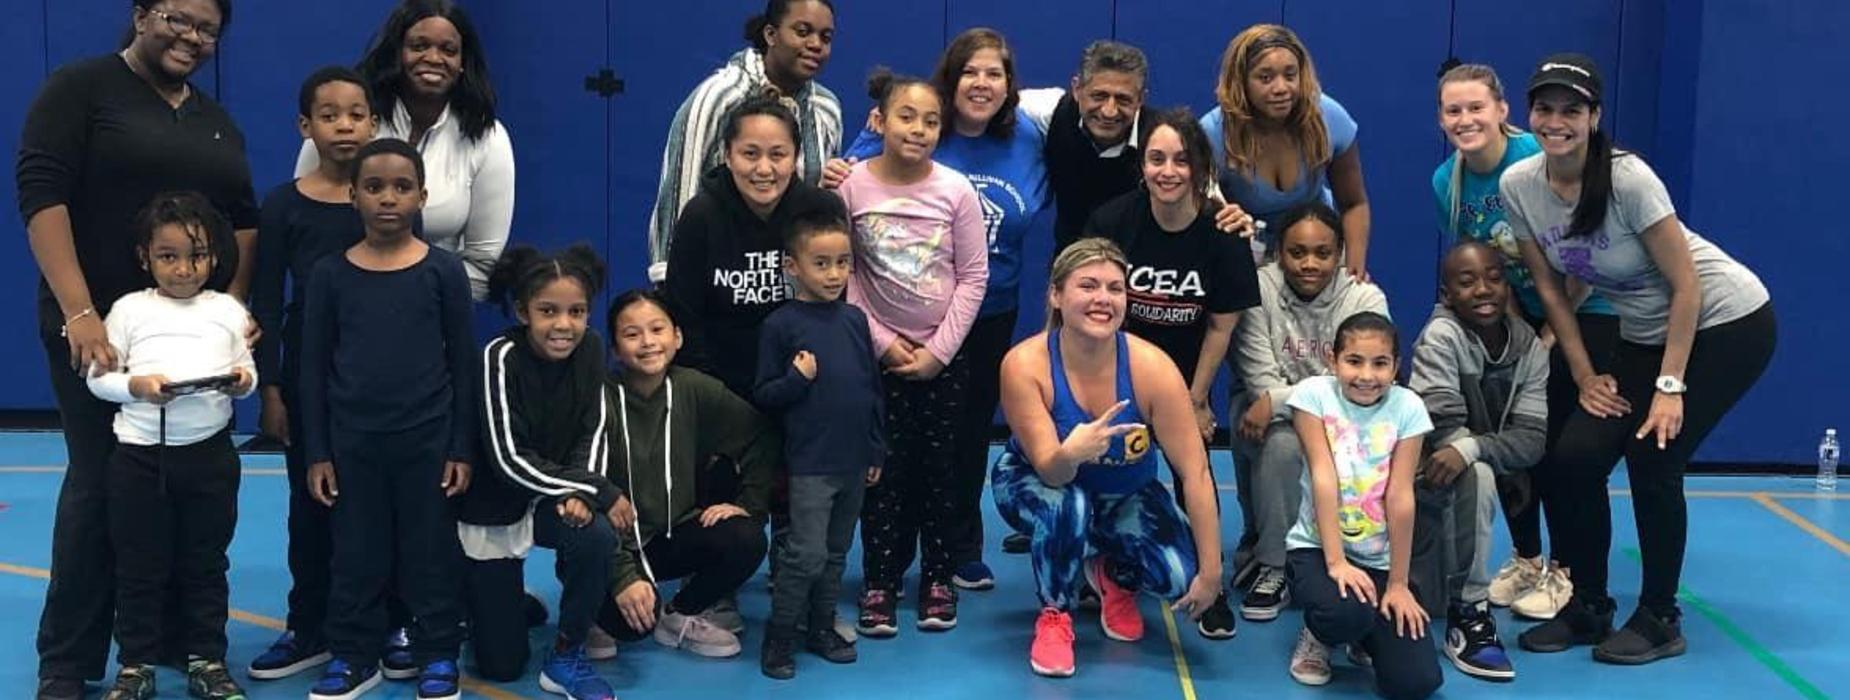 Children, parents and staff pose after a fitness class led by our teacher and Zumba instructor, Ms. Ley.